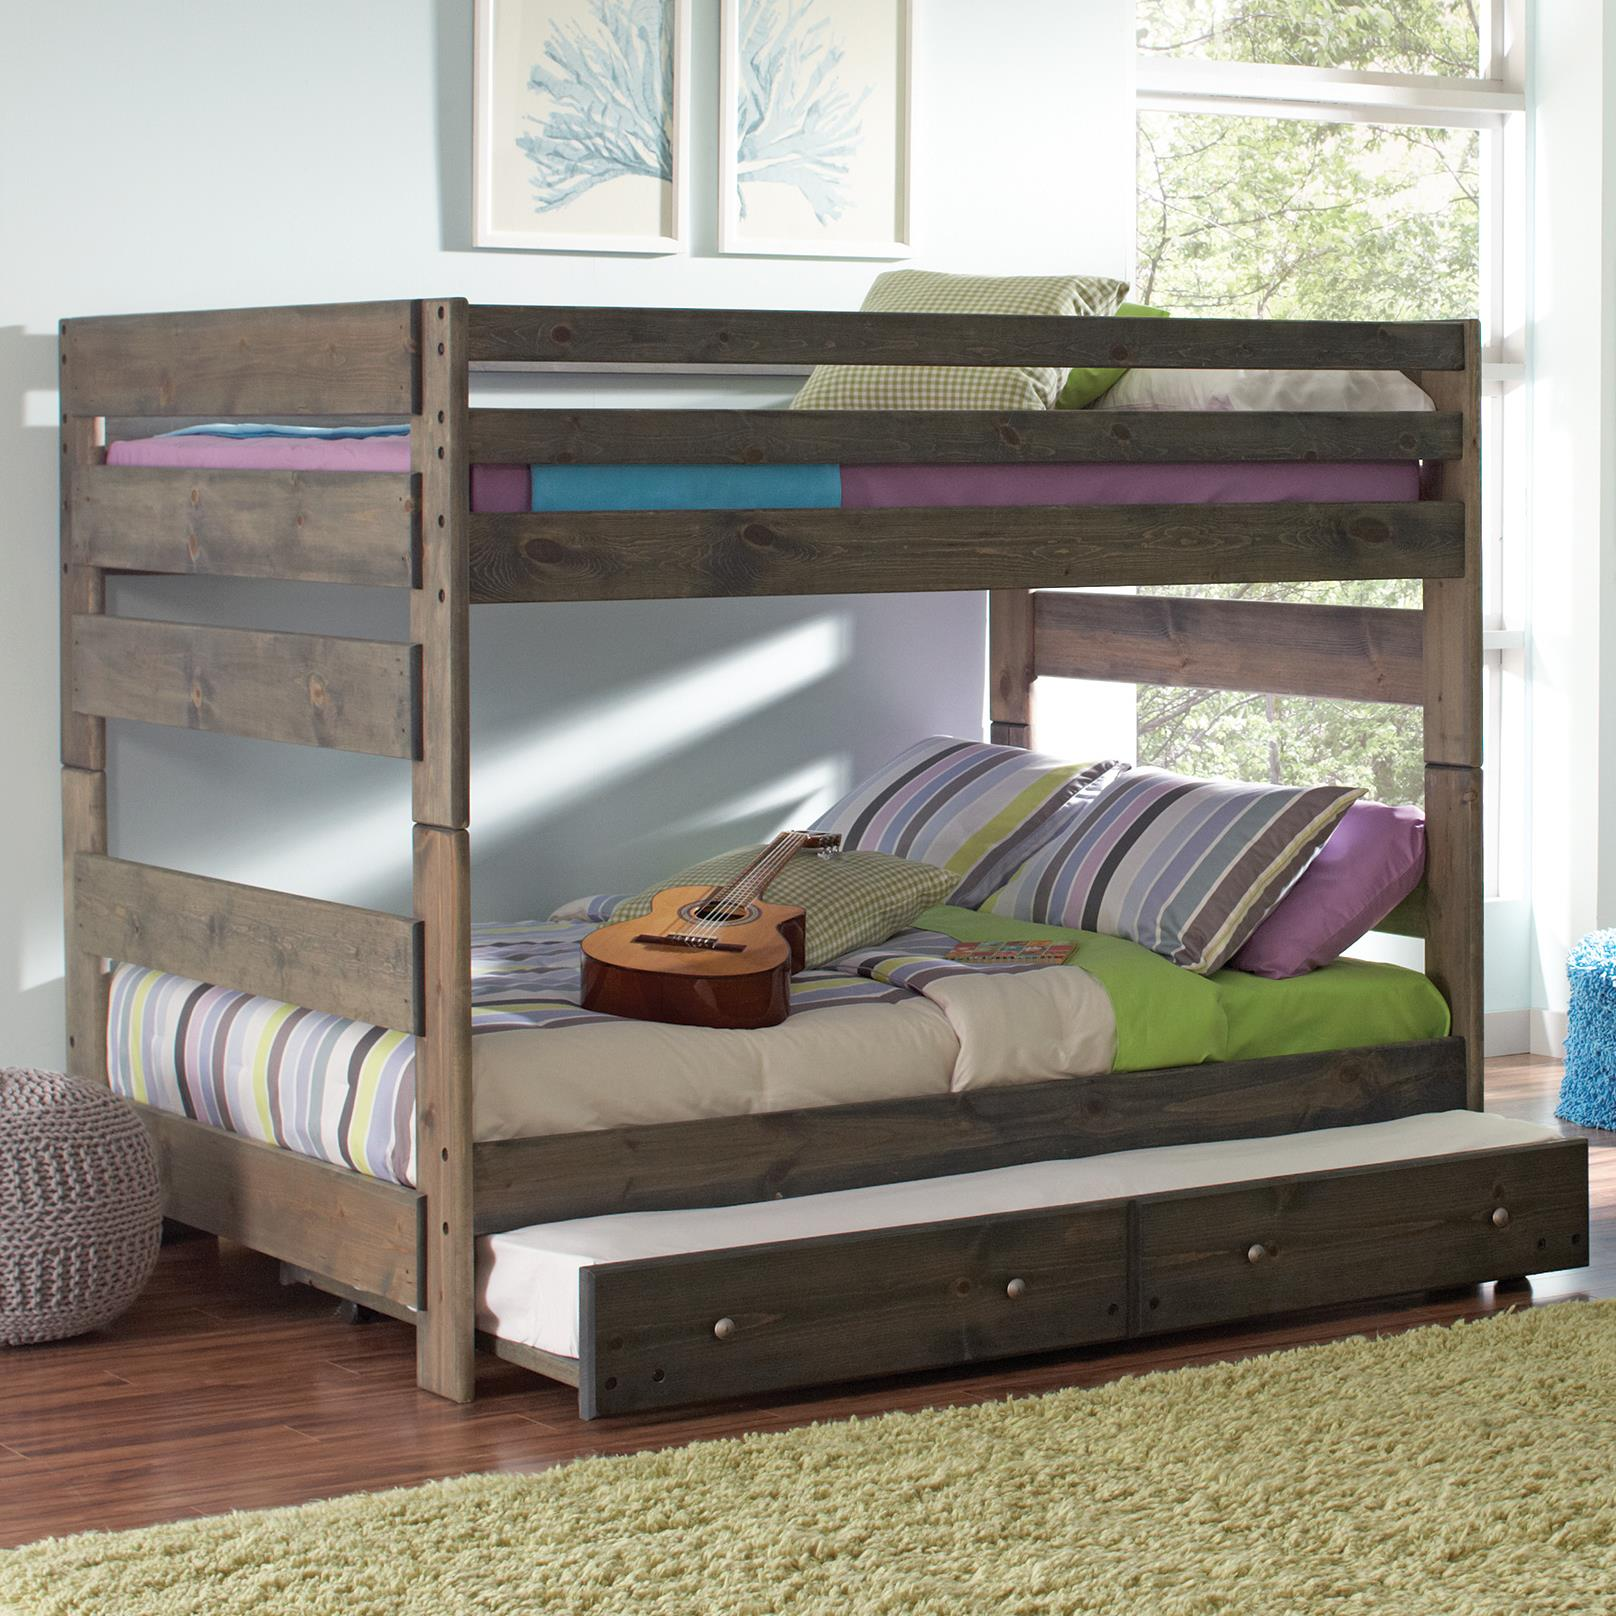 Maroon Colour Bedroom Bedroom Sets Value City Furniture Bedroom Wall Color Ideas Bedroom Wardrobe Design: Coaster Wrangle Hill Full Over Full Bunk Bed With Pull Out